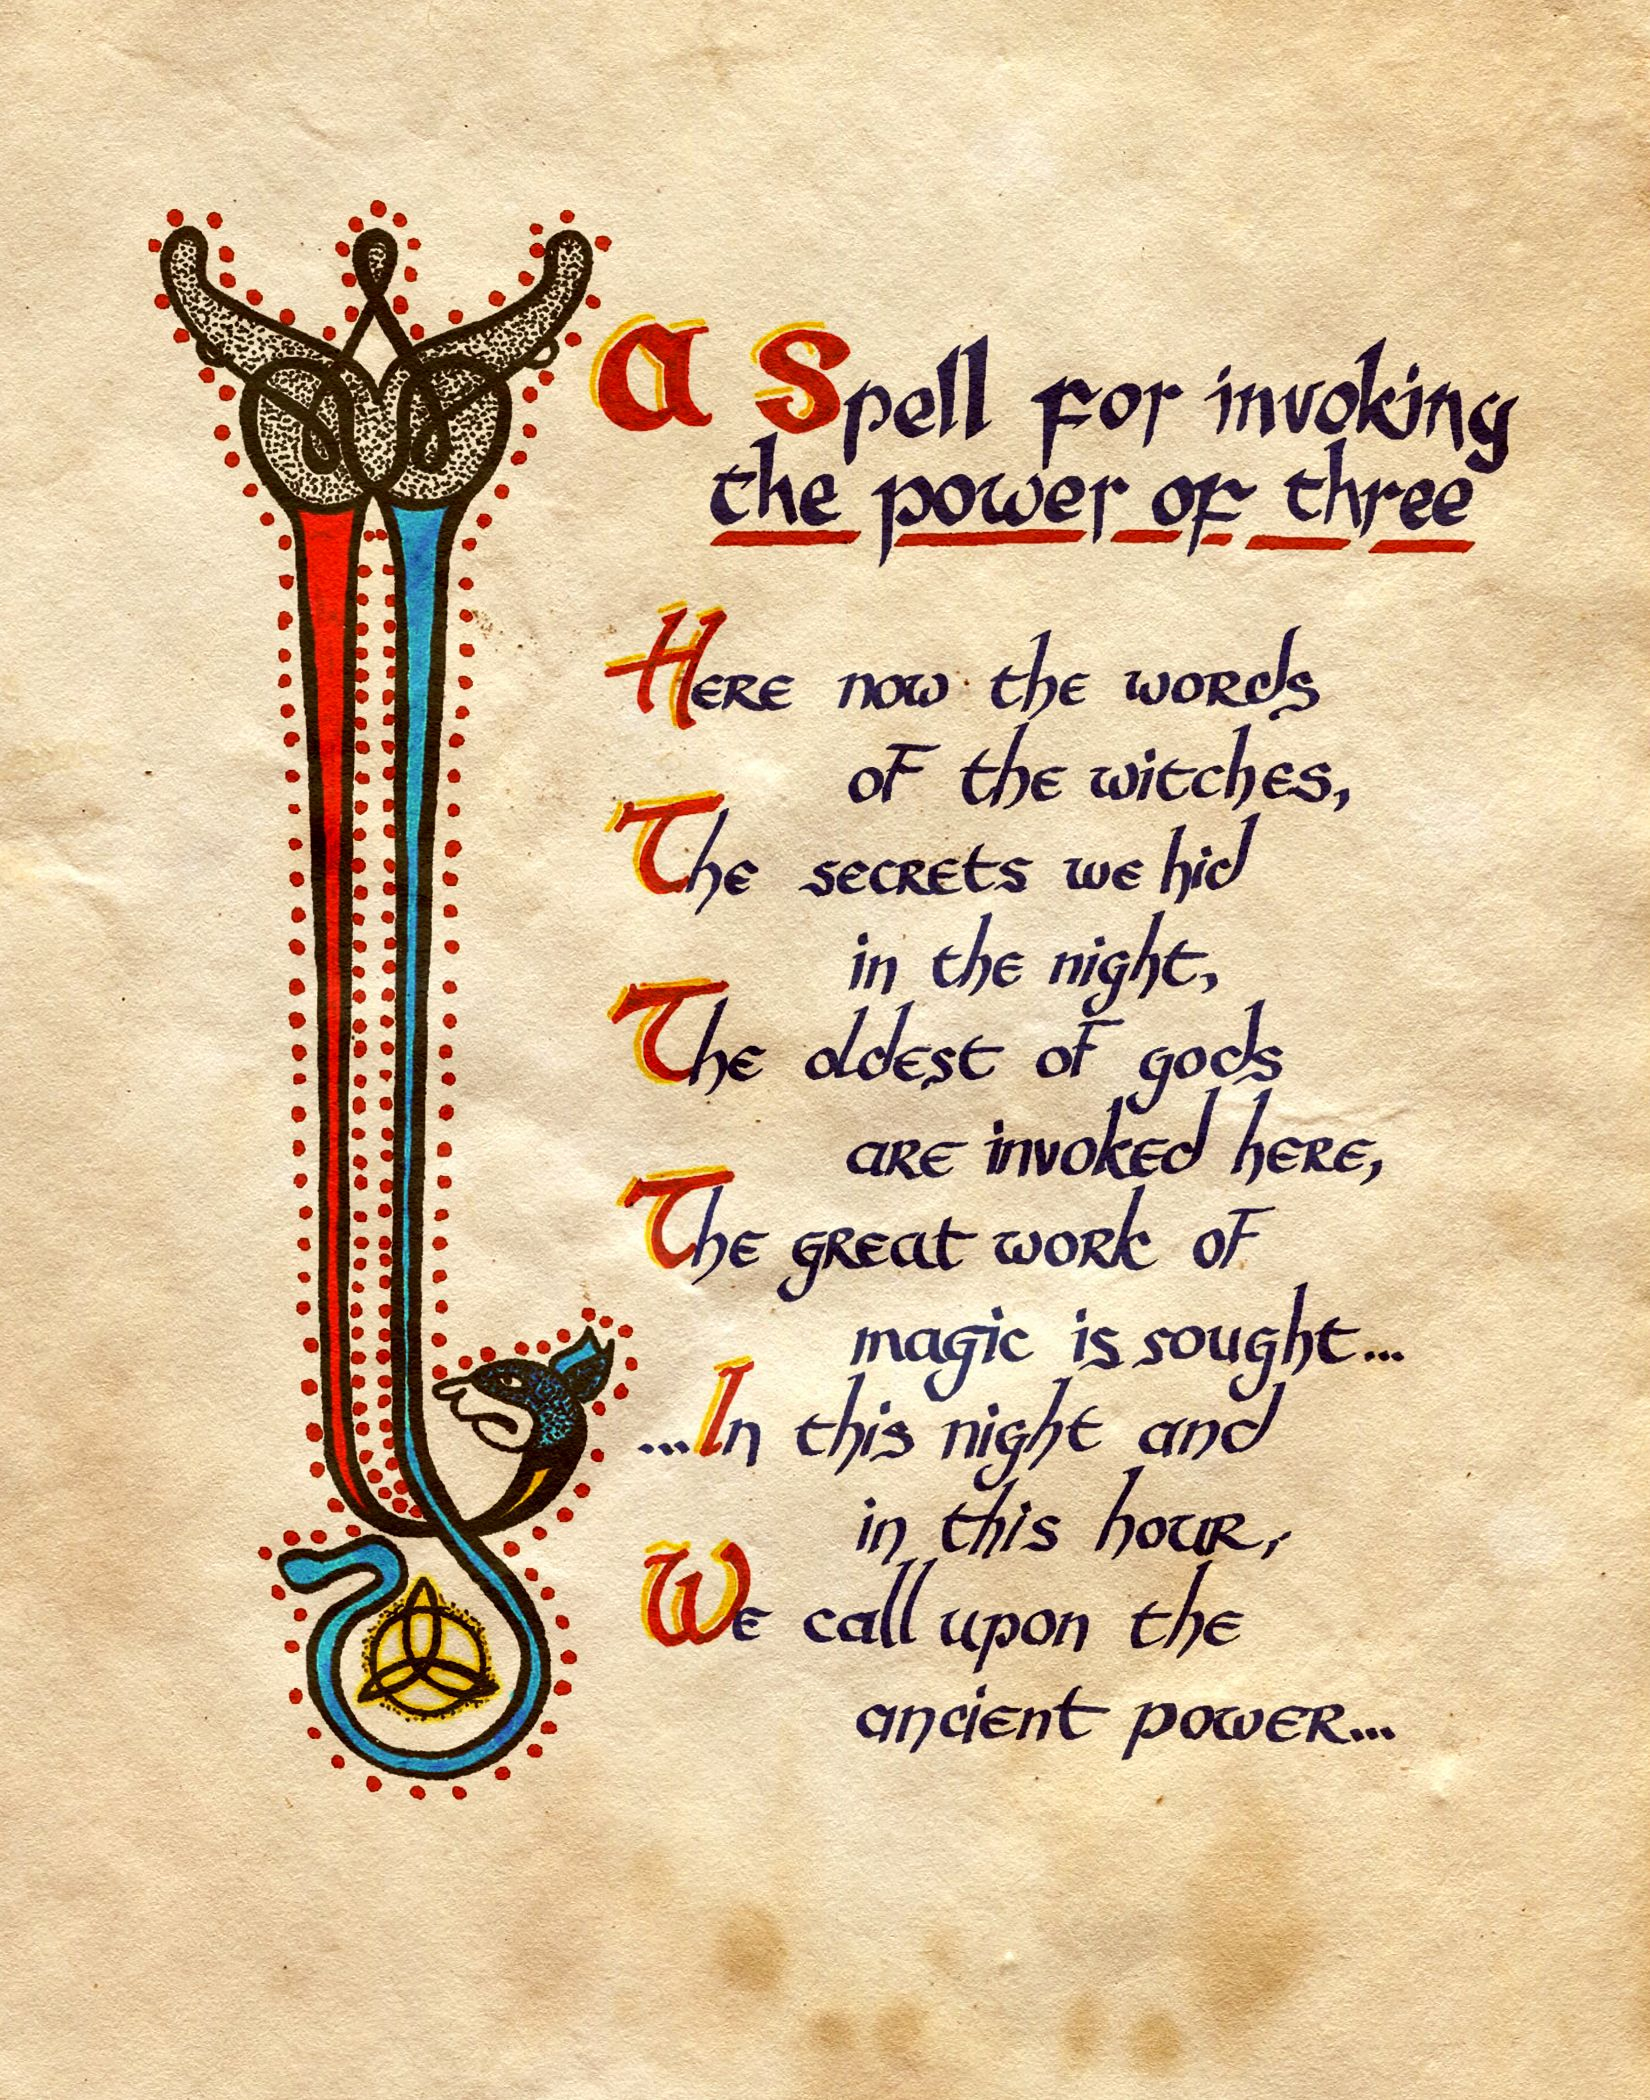 A Spell for invoking the power of three